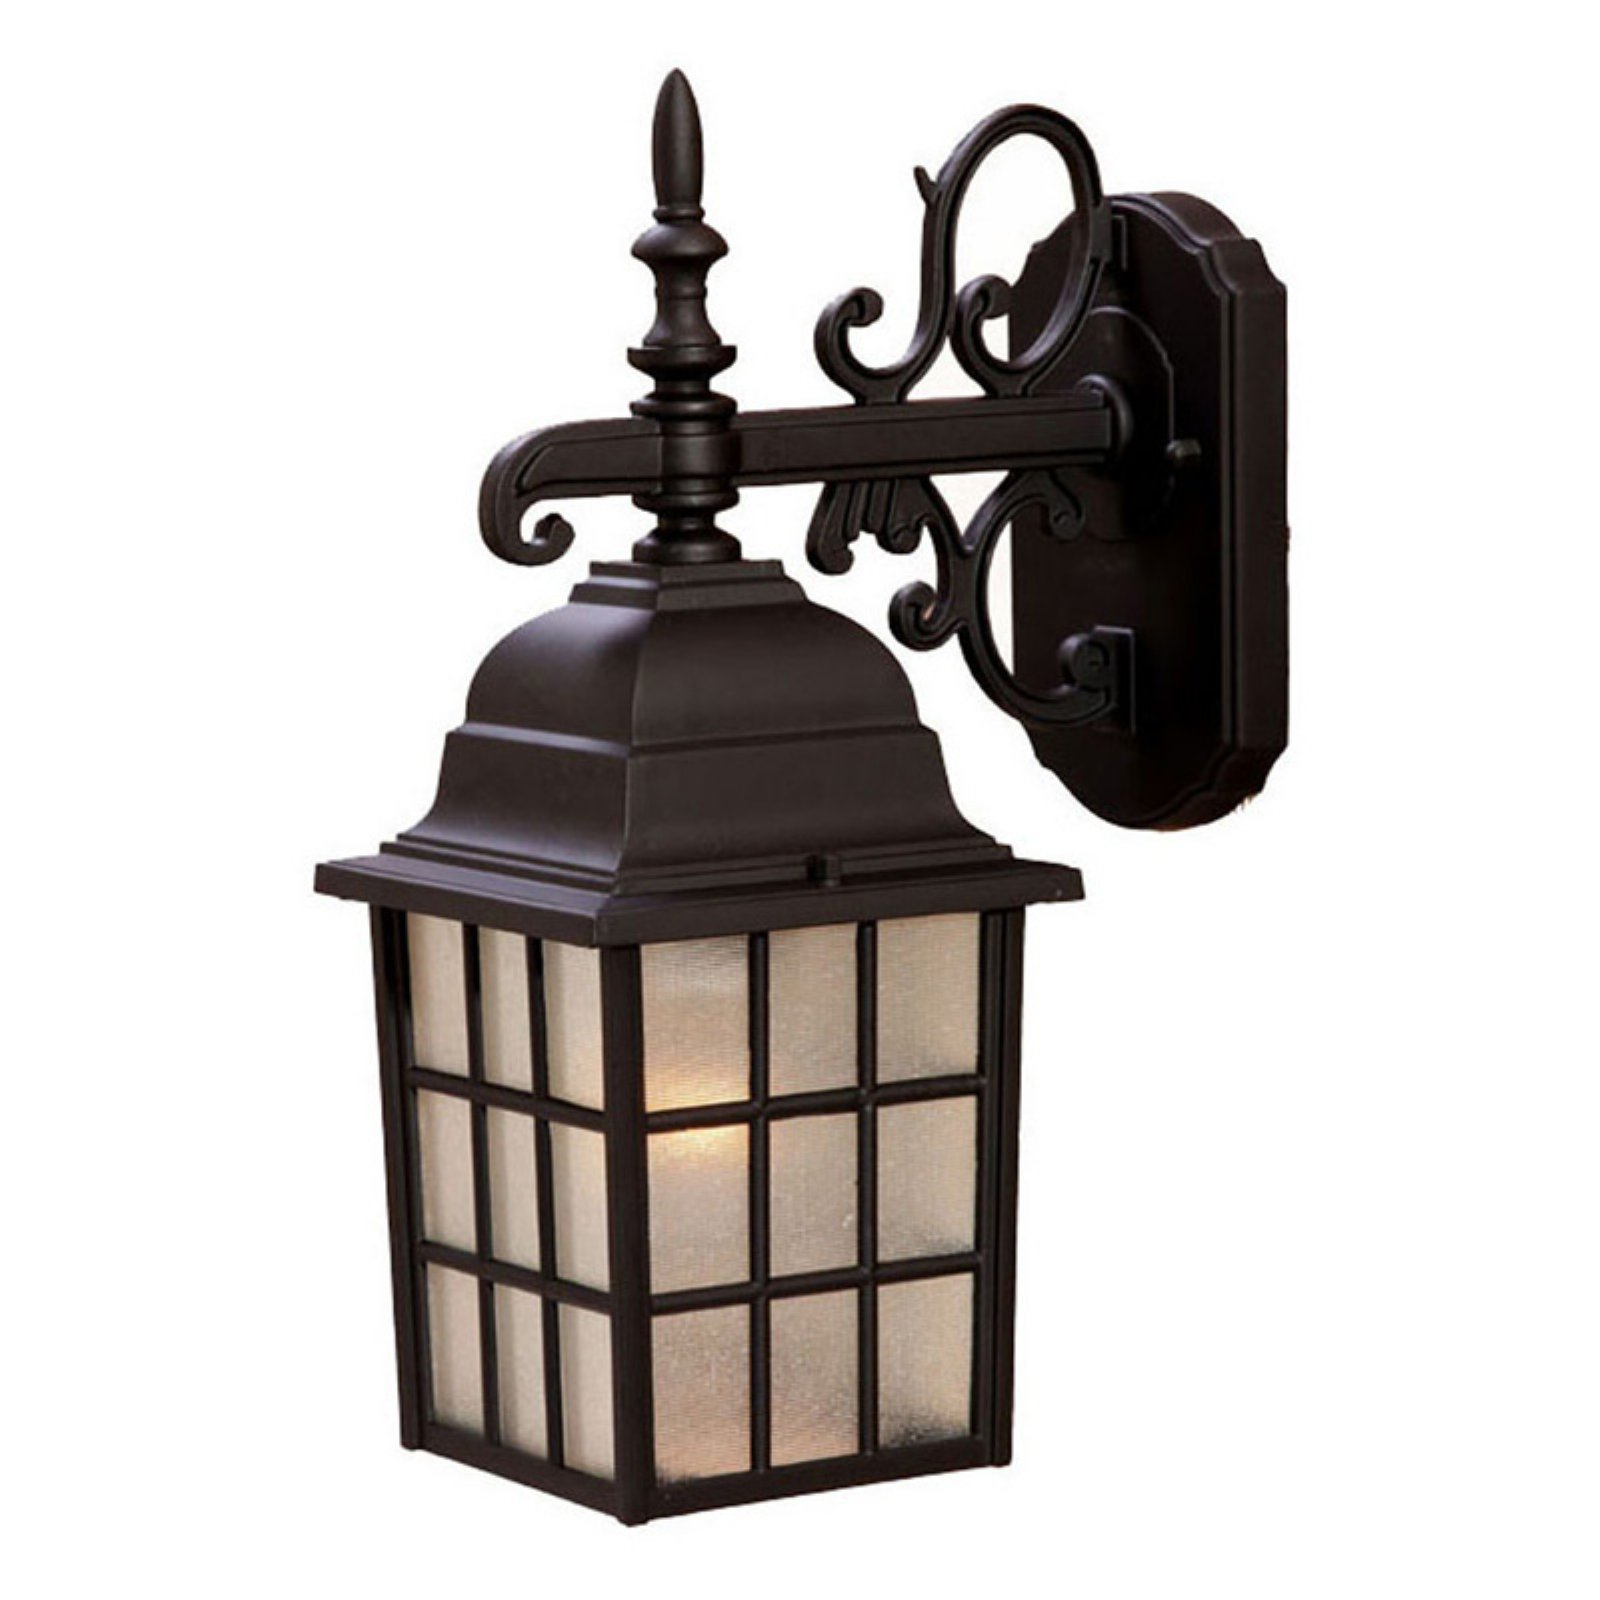 Acclaim Lighting Nautica 1 Light Outdoor Wall Mount Light Fixture